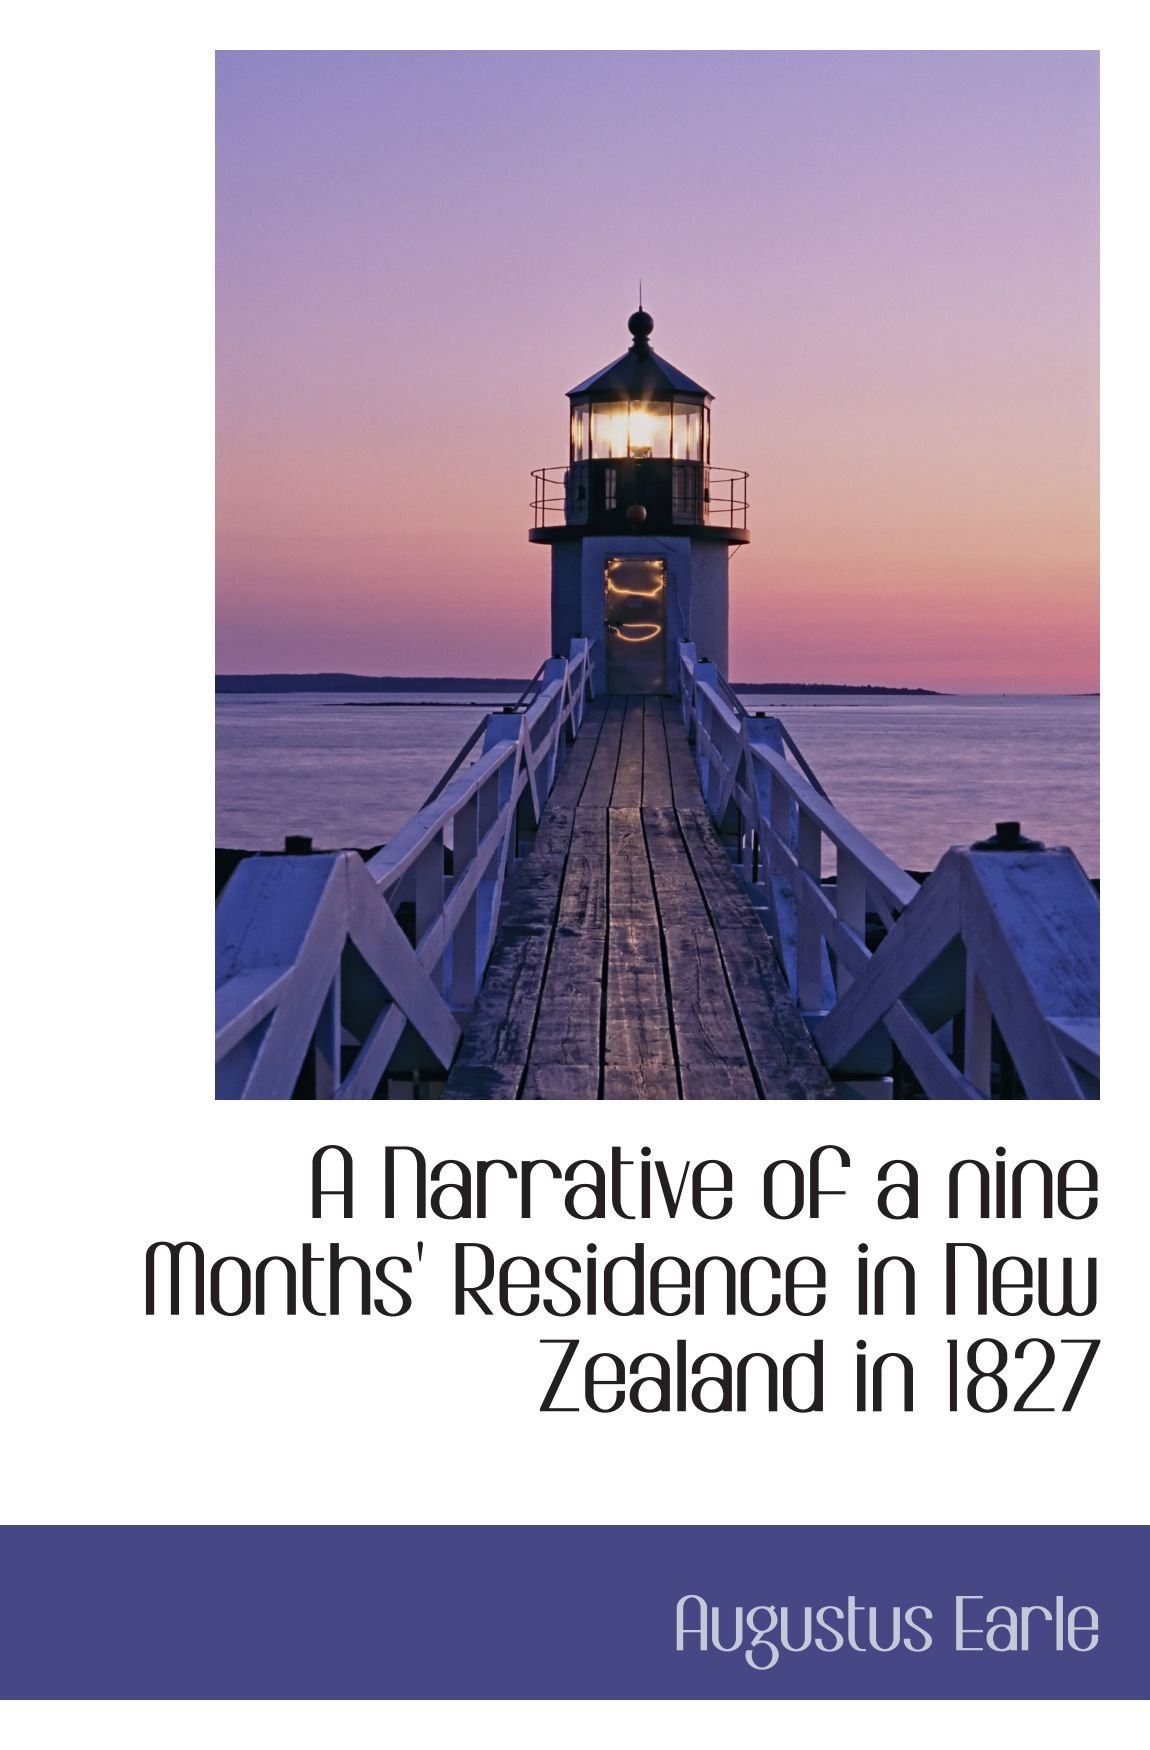 Download A Narrative of a nine Months' Residence in New Zealand in 1827 pdf